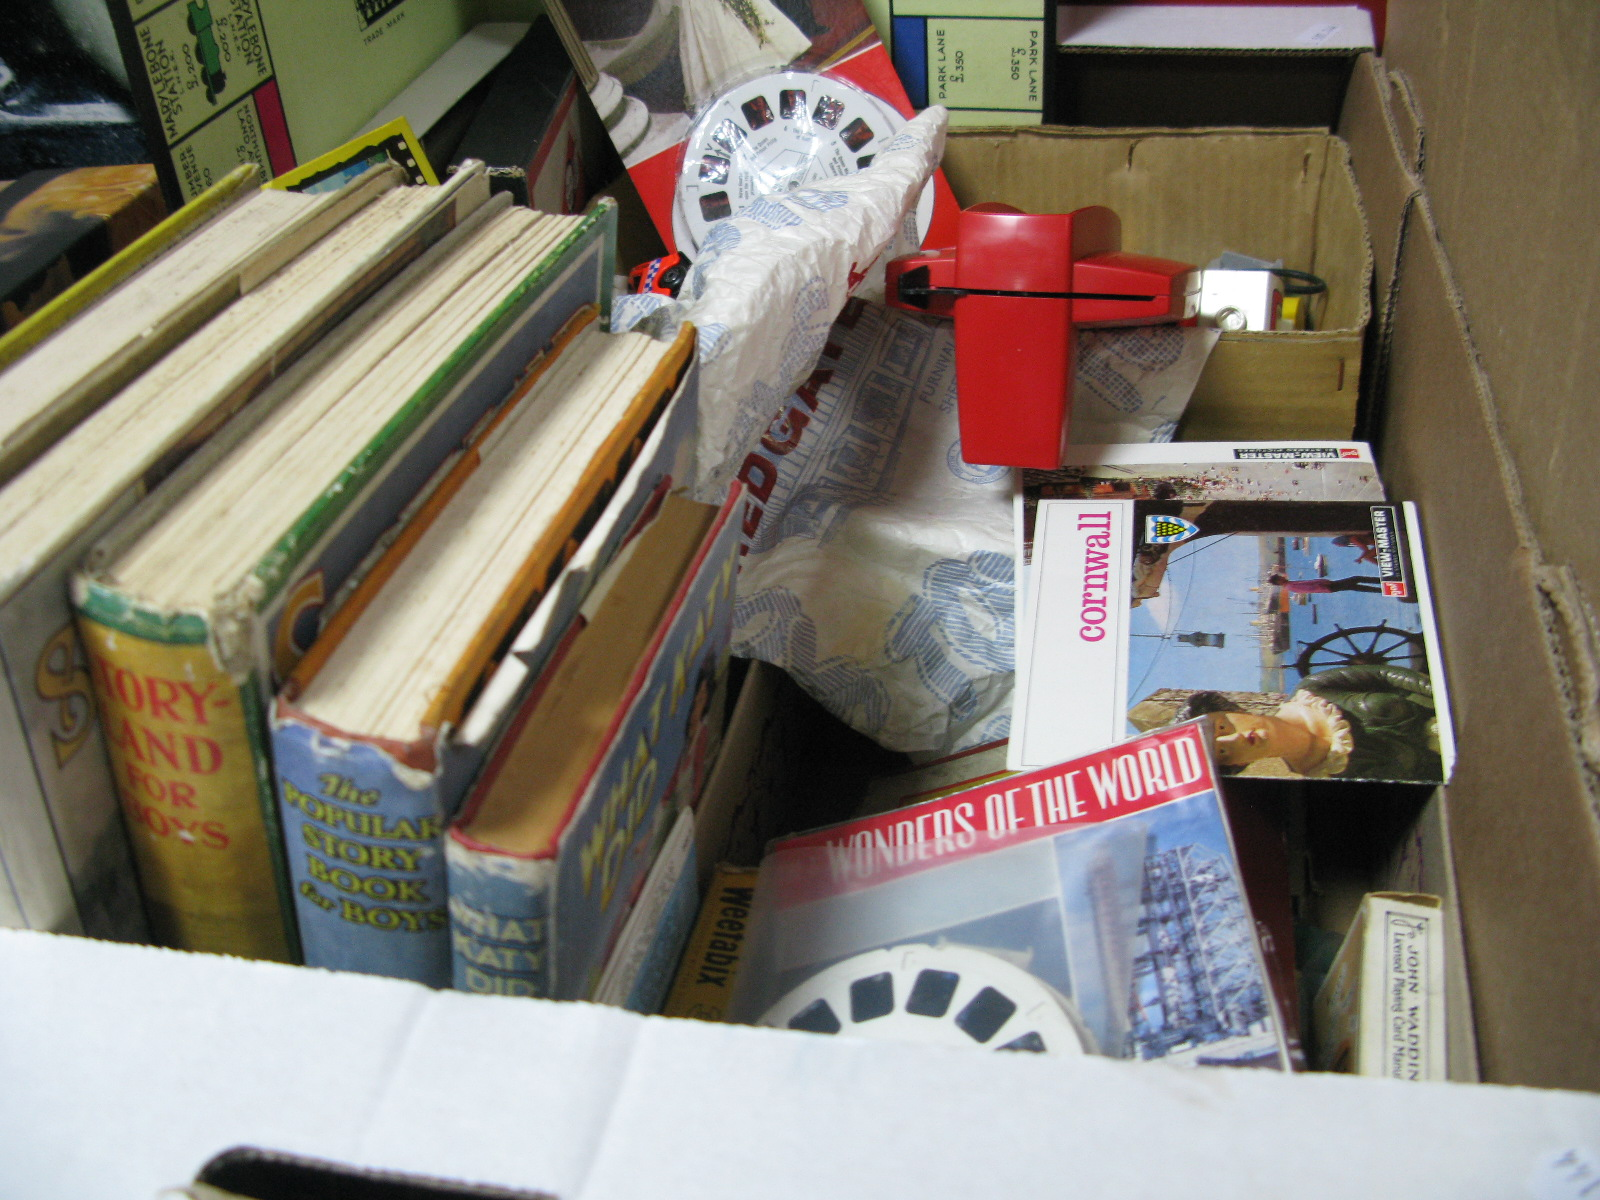 Lot 1014 - Vintage Monopoly and Other Games, Viewmaster and assorted slides including The Royal Wedding